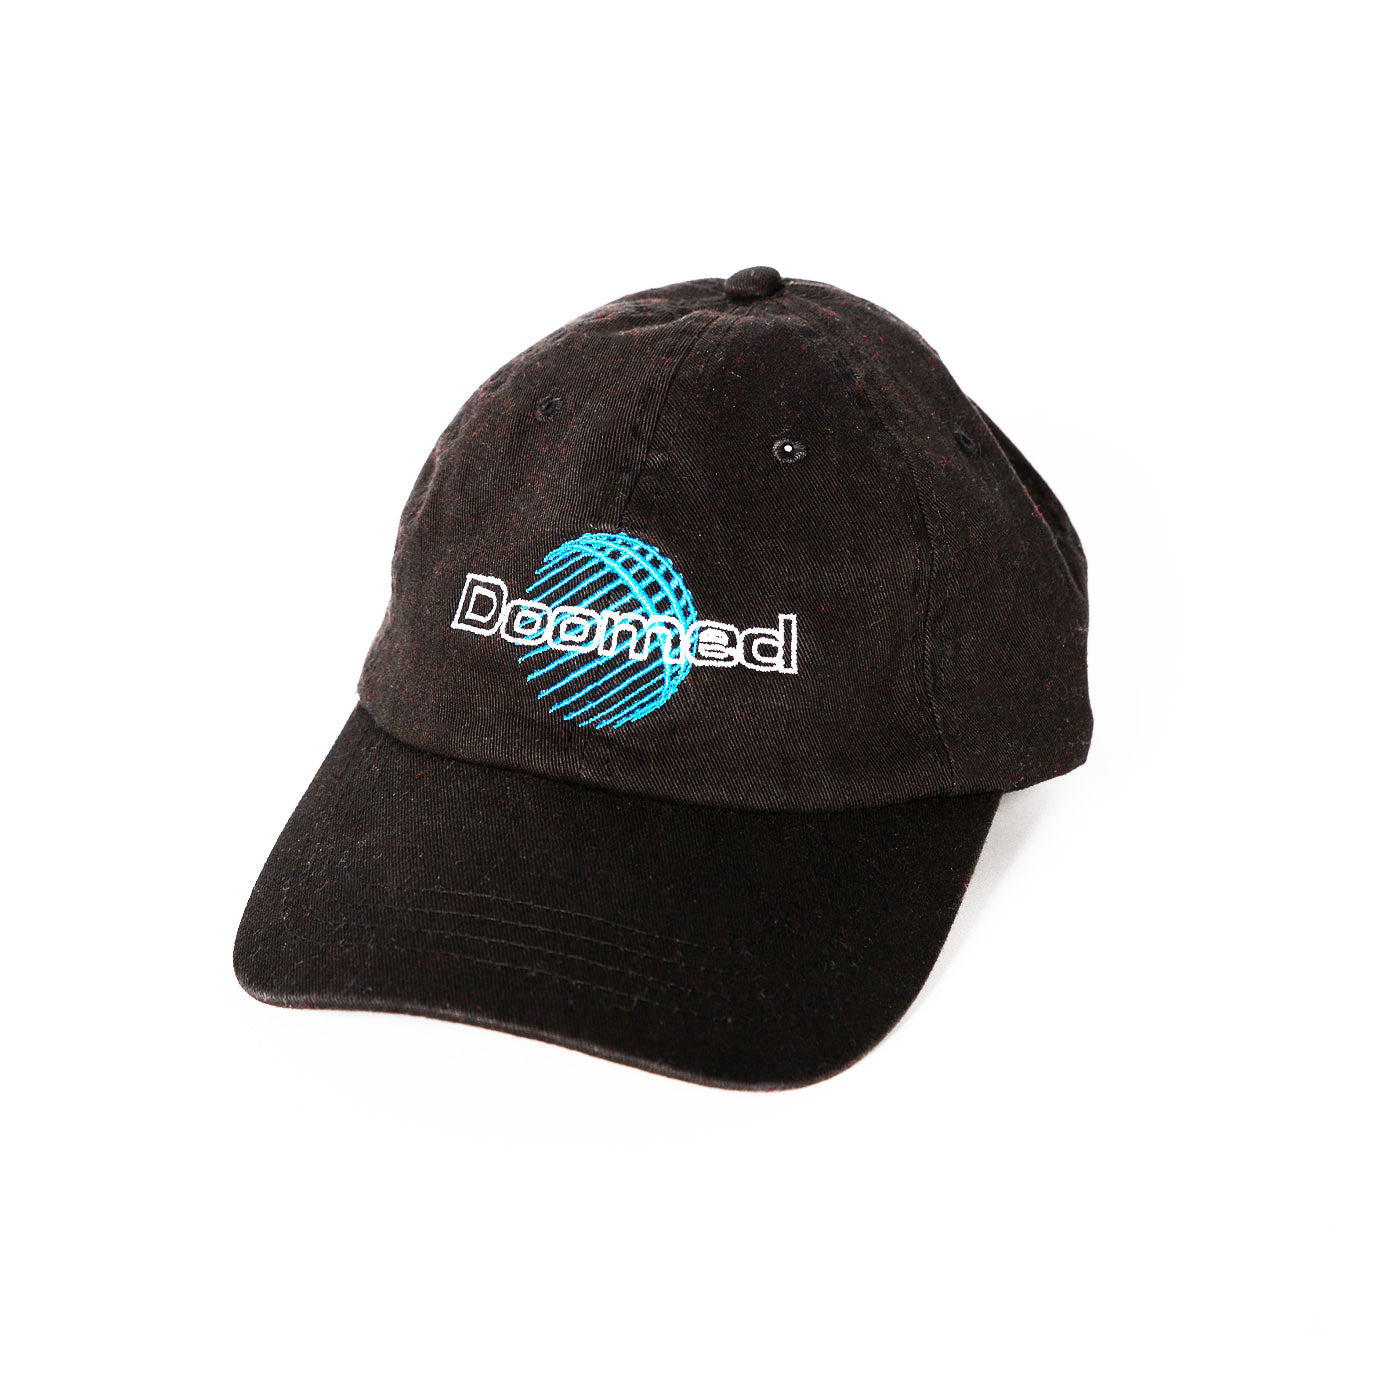 Doomed World Famous Dad Cap Black